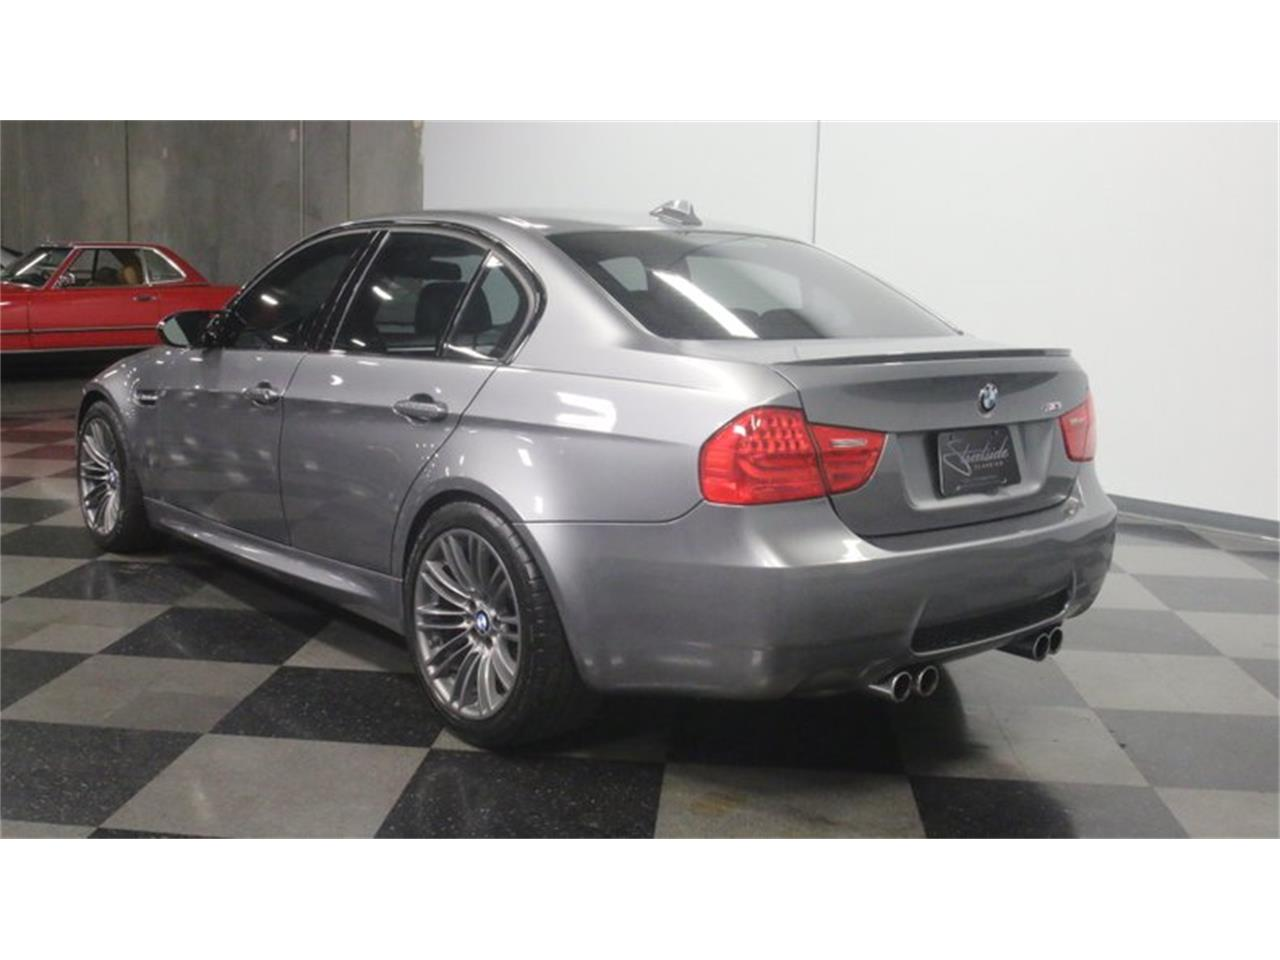 2010 BMW M3 for sale in Lithia Springs, GA – photo 9